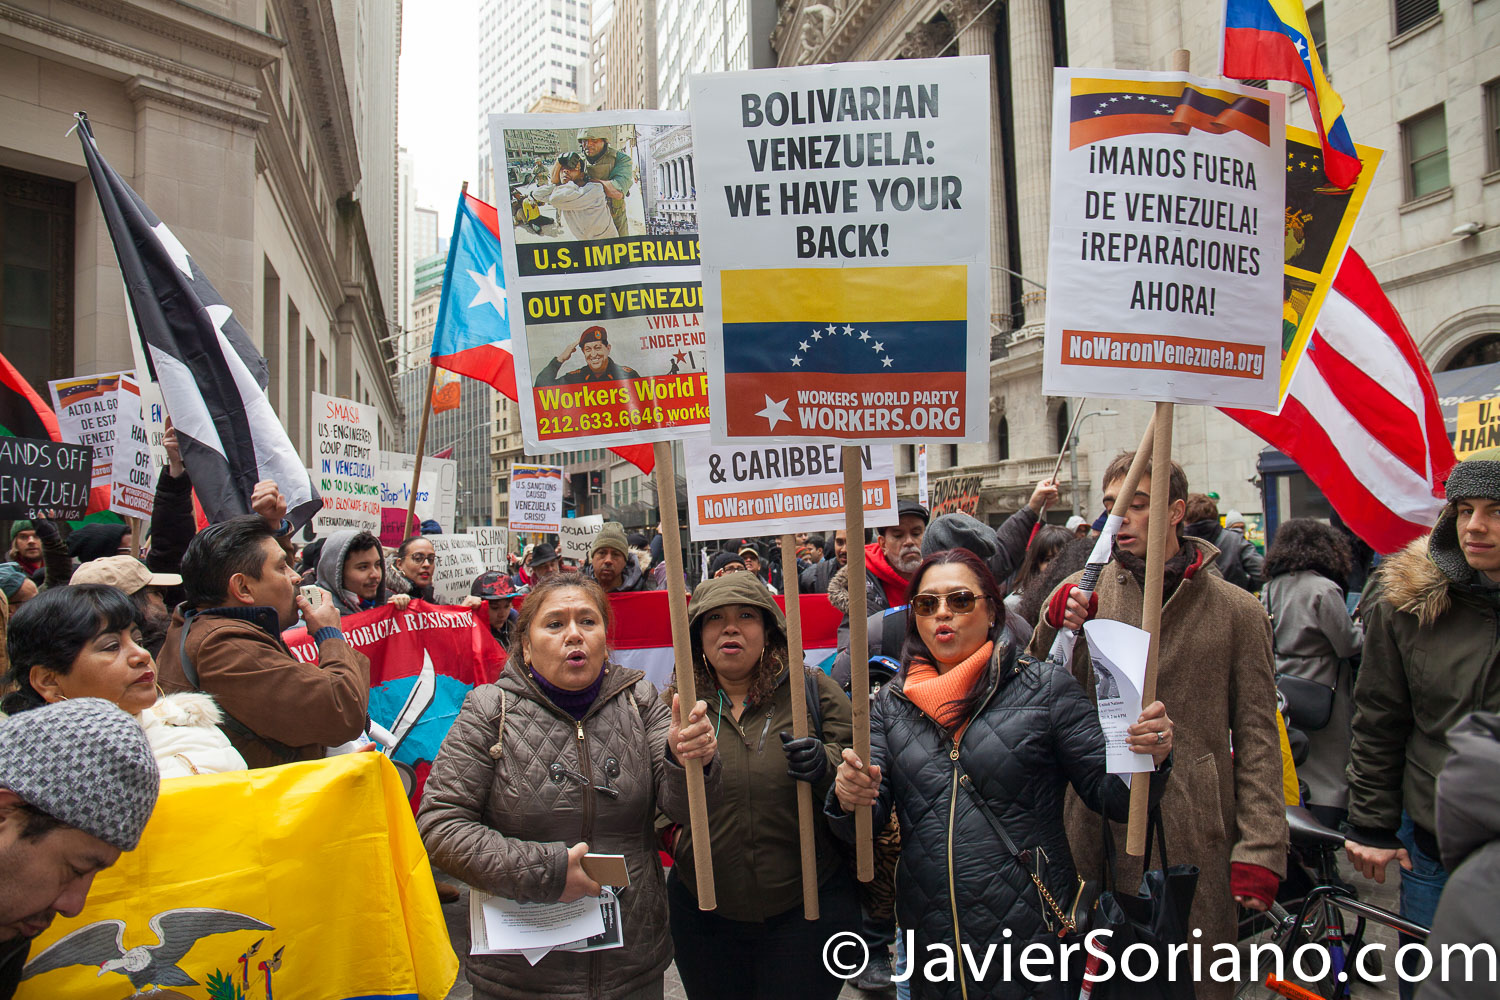 Sábado, 23 de febrero, 2019. Mitin y marcha en la Ciudad de Nueva York: Saquen las manos de Venezuela. Saturday, February 23, 2019. Rally and march in New York City: Hands off Venezuela. Foto por Javier Soriano/www.JavierSoriano.com